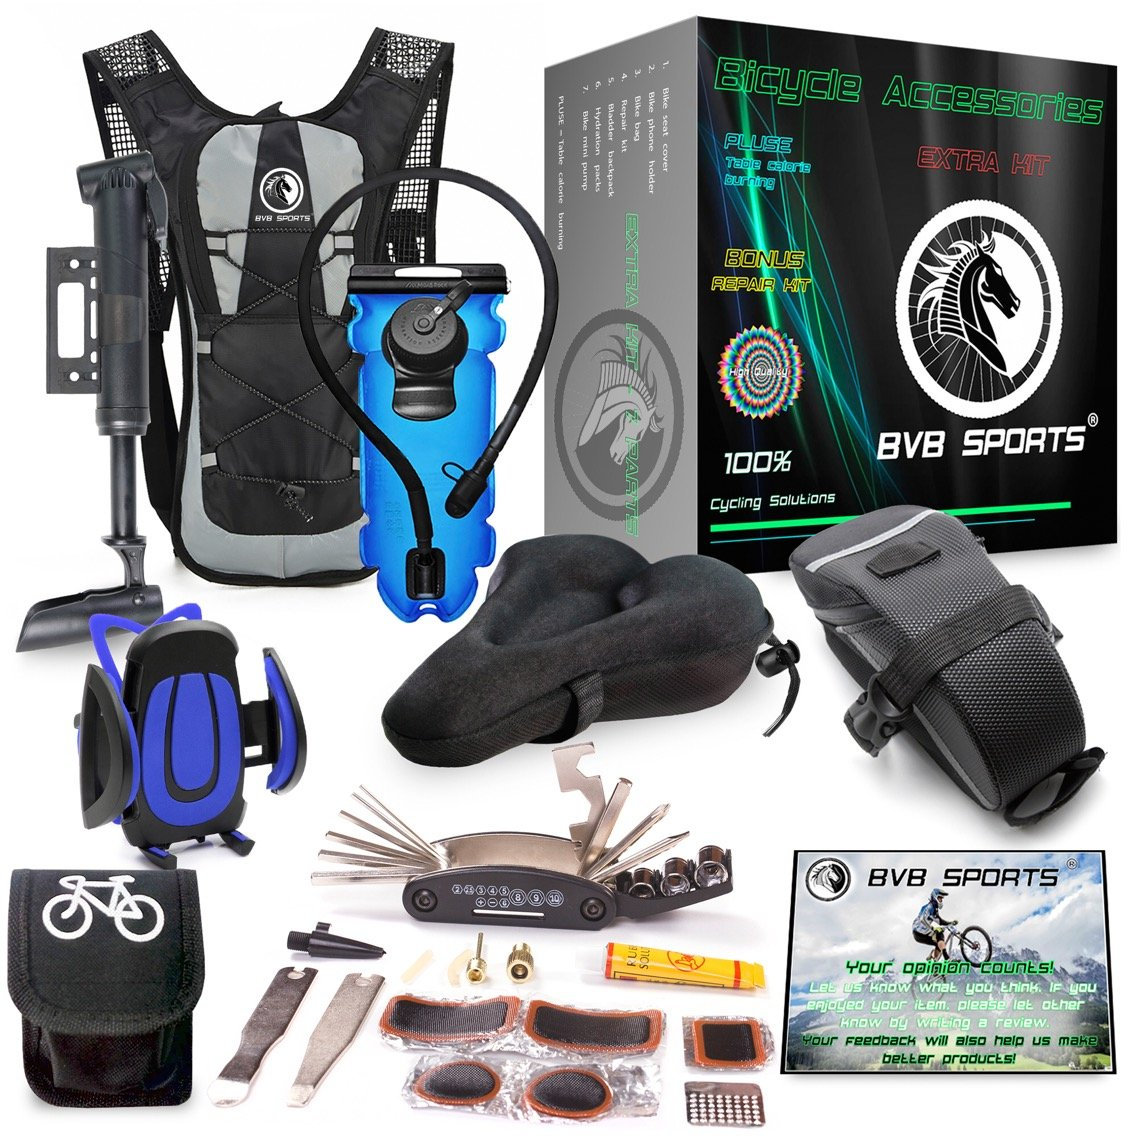 Bike Accessories & Cycling Equipment Set : Bicycle Phone Handlebar Mount (iPhone, Samsung, Etc.), Water Backpack, Bicycles Seats Cushion Cover, Under Seat Pouch, Bikes Repair Tool Kit, Mini Pump